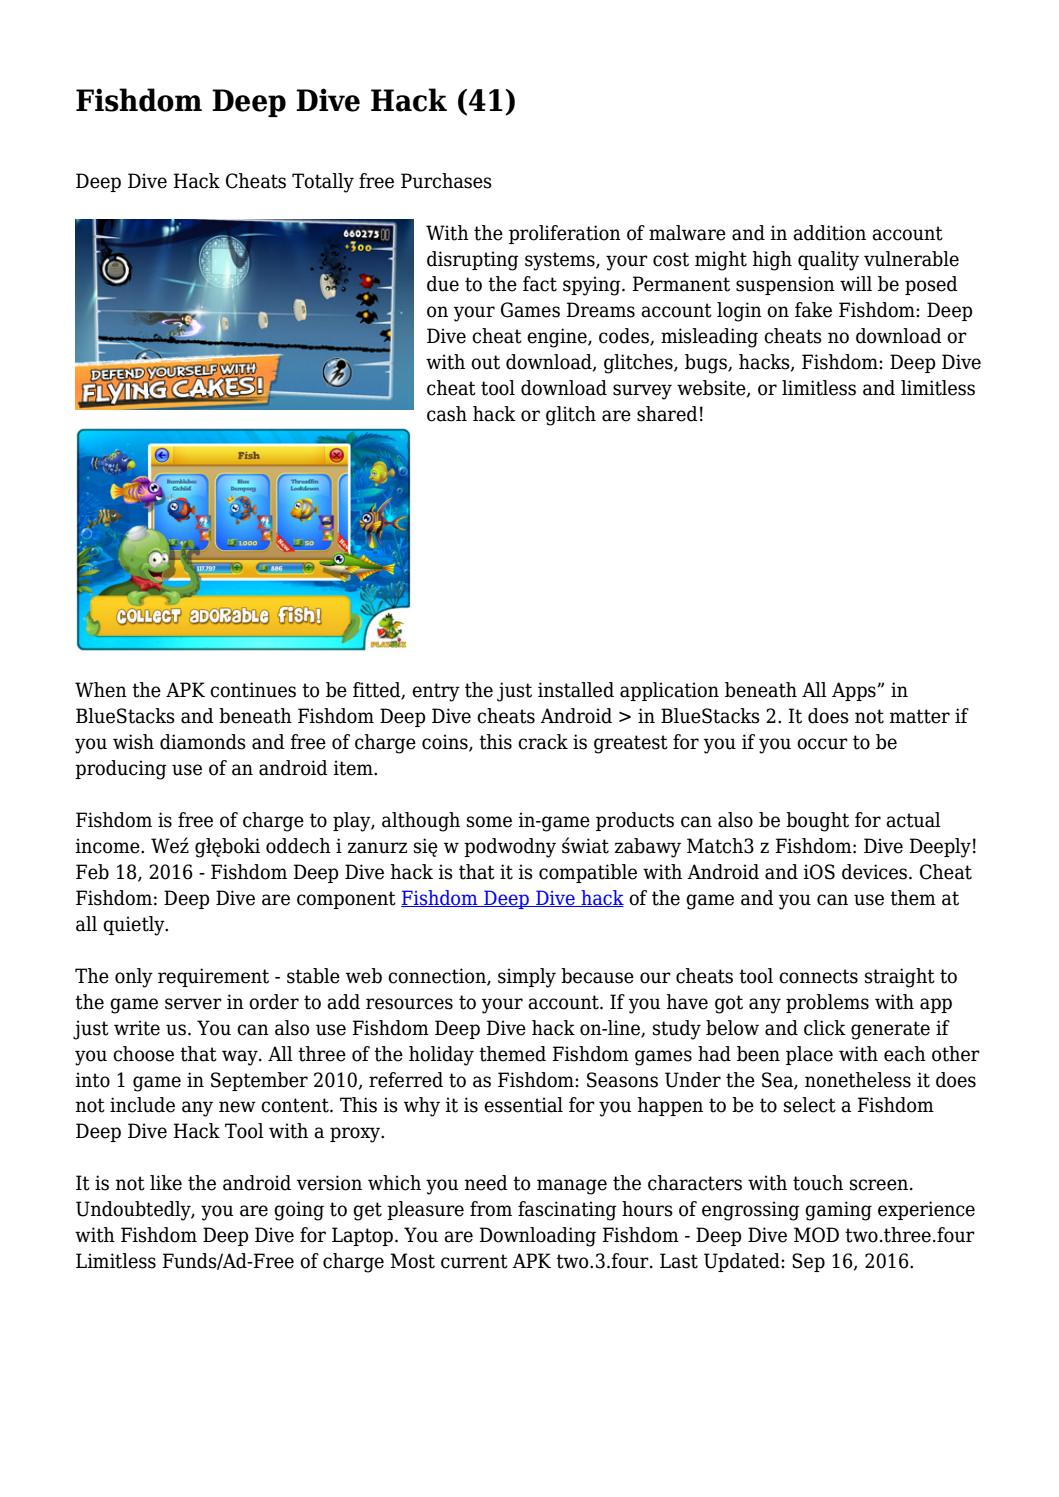 Fishdom Deep Dive Hack (41)    by daughertyvjirlaozuw - issuu